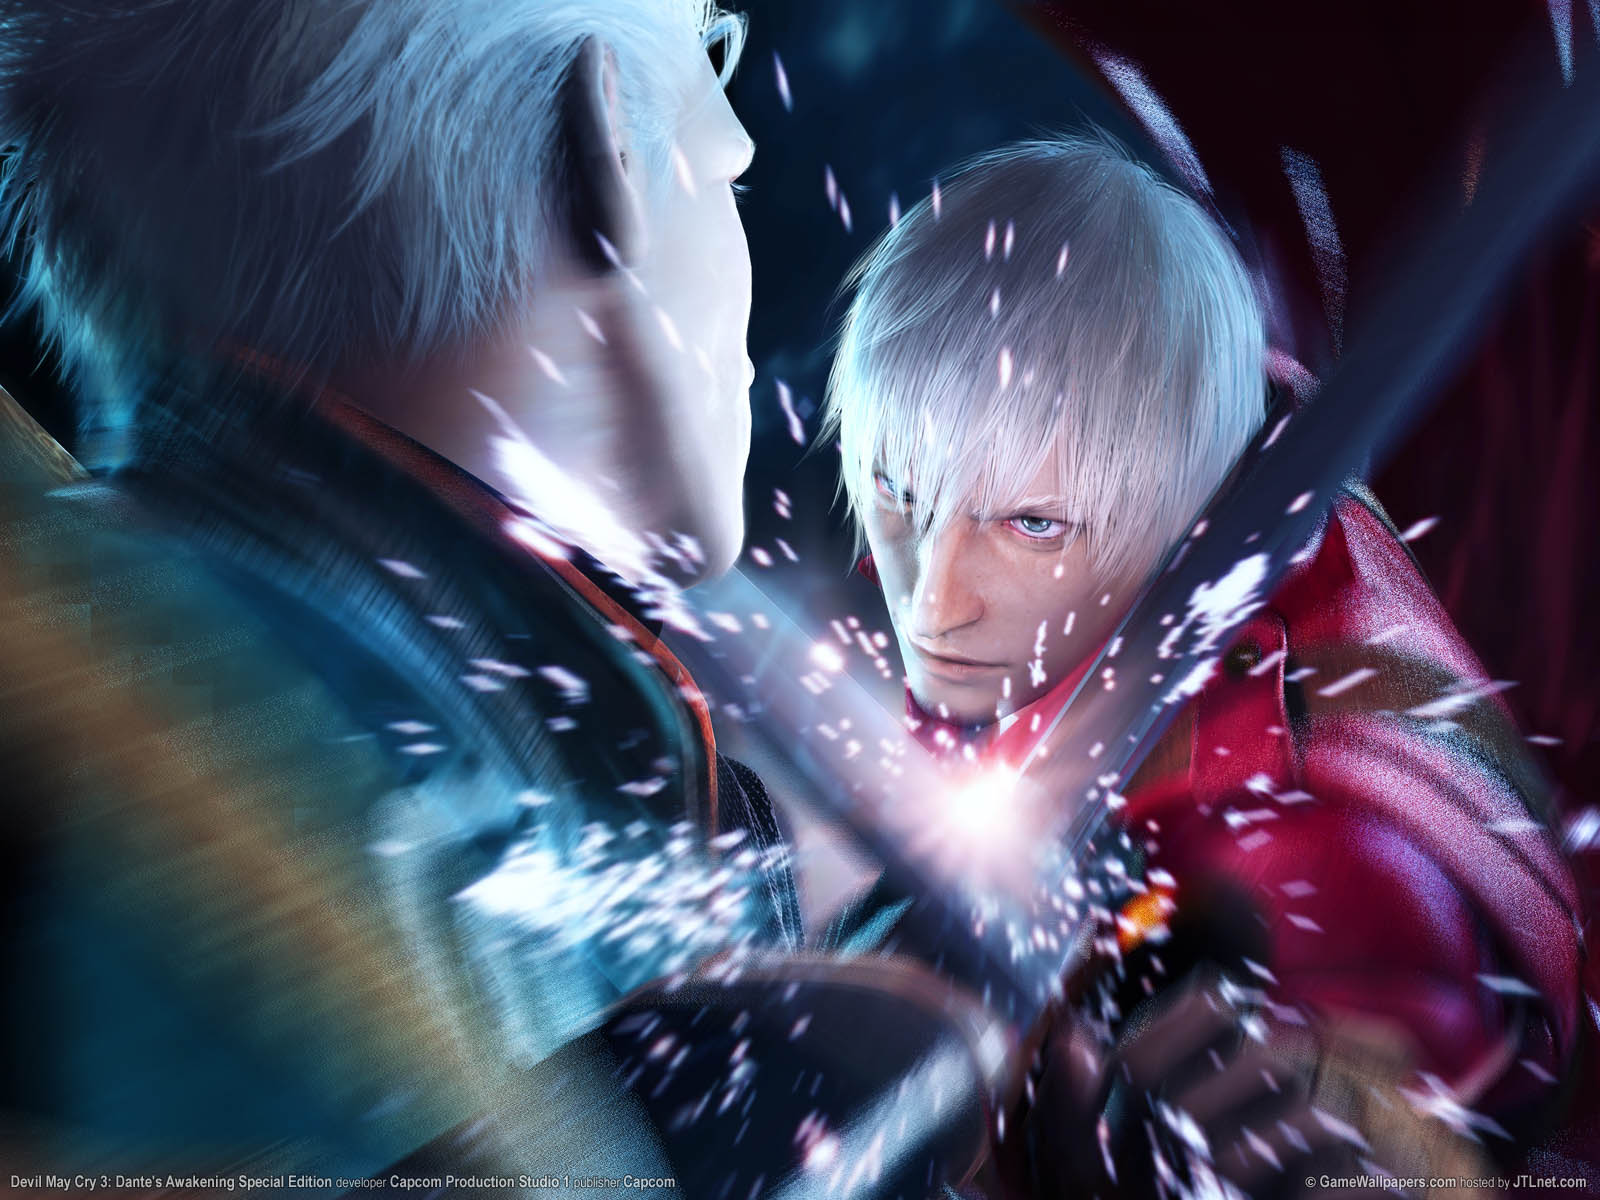 Devil May Cry Hd Wallpapers High Quality Dante Devil May Cry 4 5